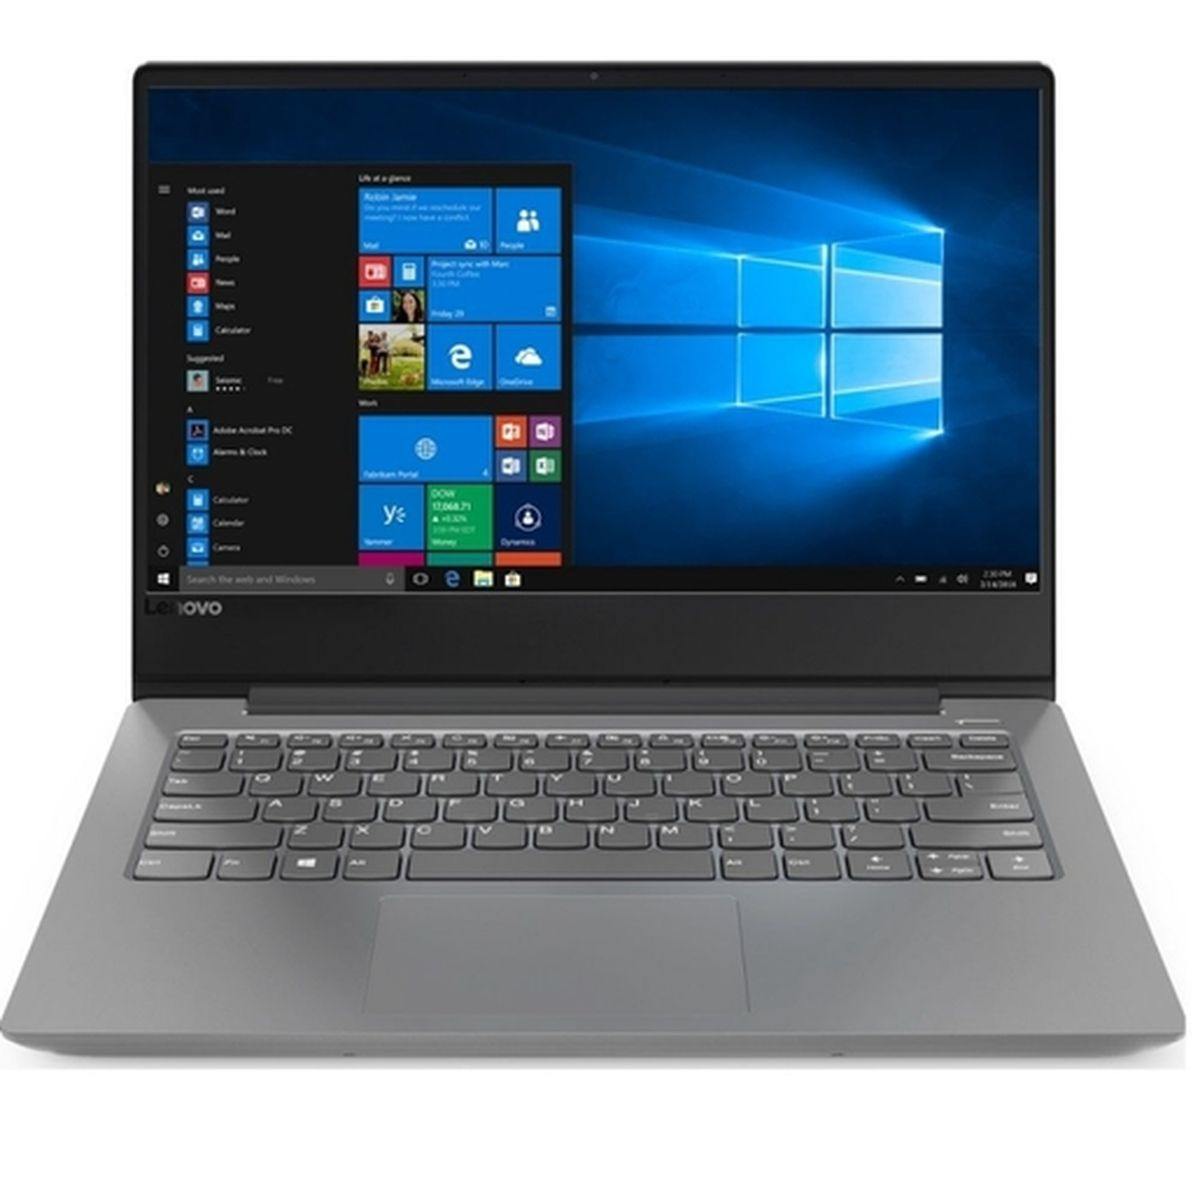 14 Ноутбук Lenovo IdeaPad 330S 81F401DBRU, серебристый ноутбук lenovo ideapad 330s 14ikb 81f401dbru intel® core™ i5 8250u kaby lake r 6 мб smartcache 1 60 ггц 4 гб 256 ssd 14 1920 х 1080 full hd ips intel uhd graphics 620 sma выделяется